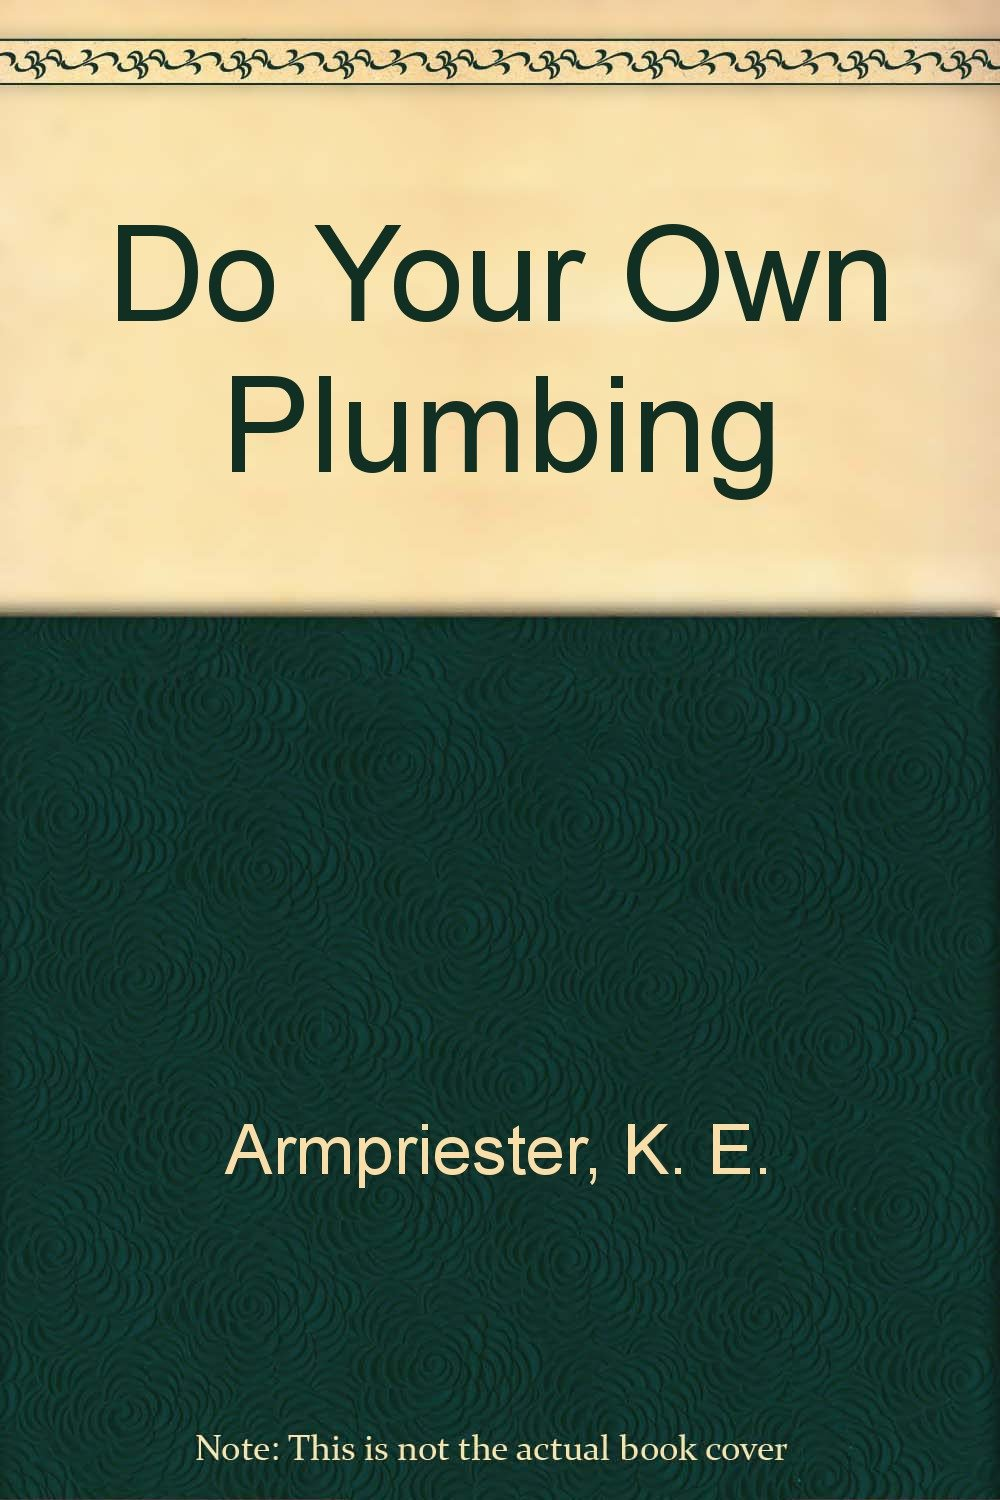 Do Your Own Plumbing